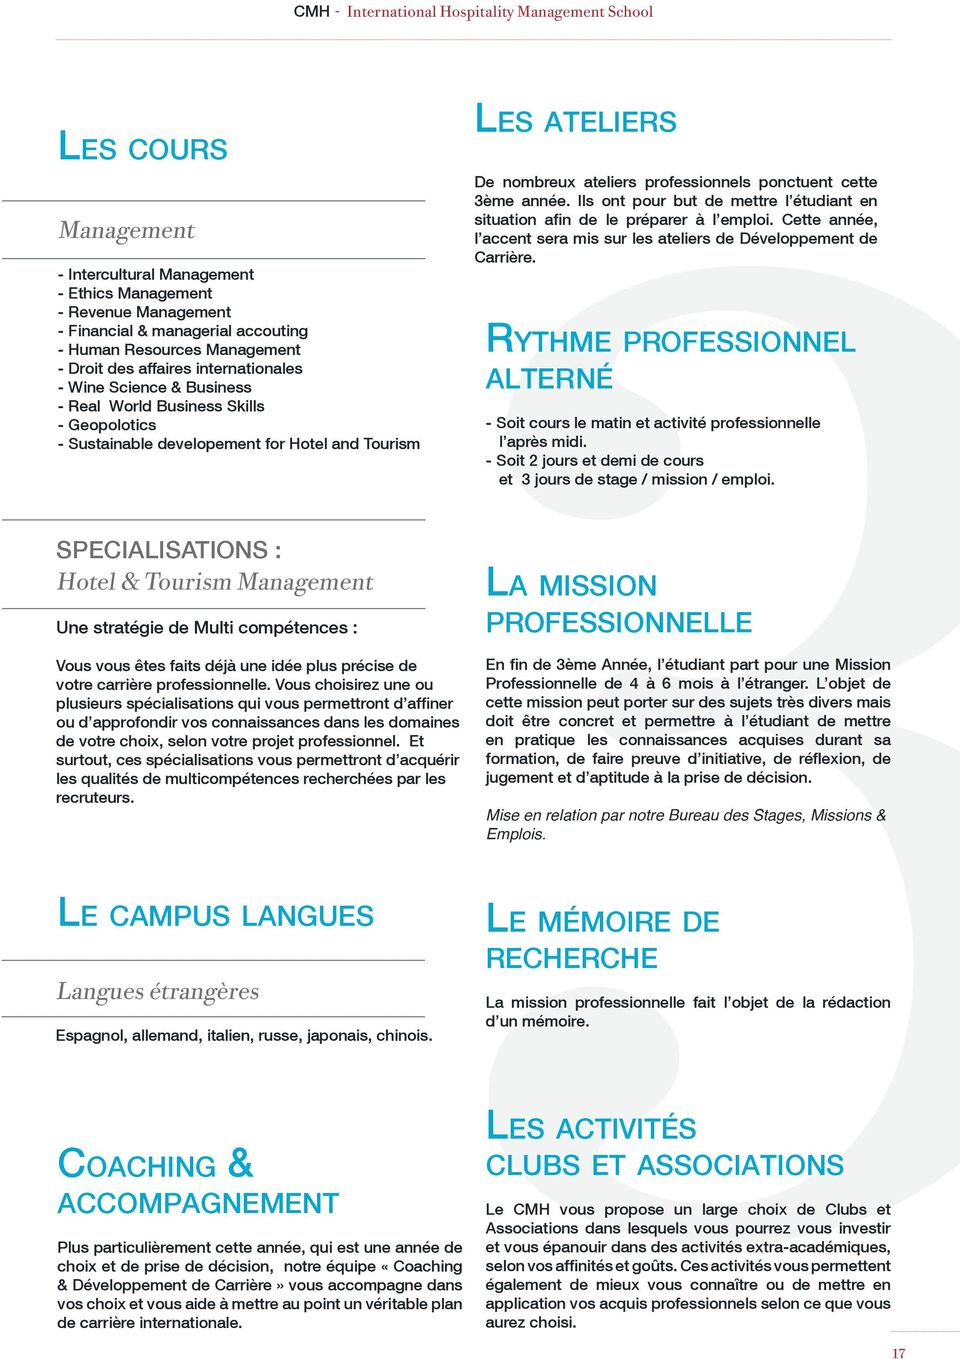 - Intercultural Management - Ethics Management - Revenue Management - Financial & managerial accouting - Human Resources Management Rythme professionnel - Droit des affaires internationales - Wine